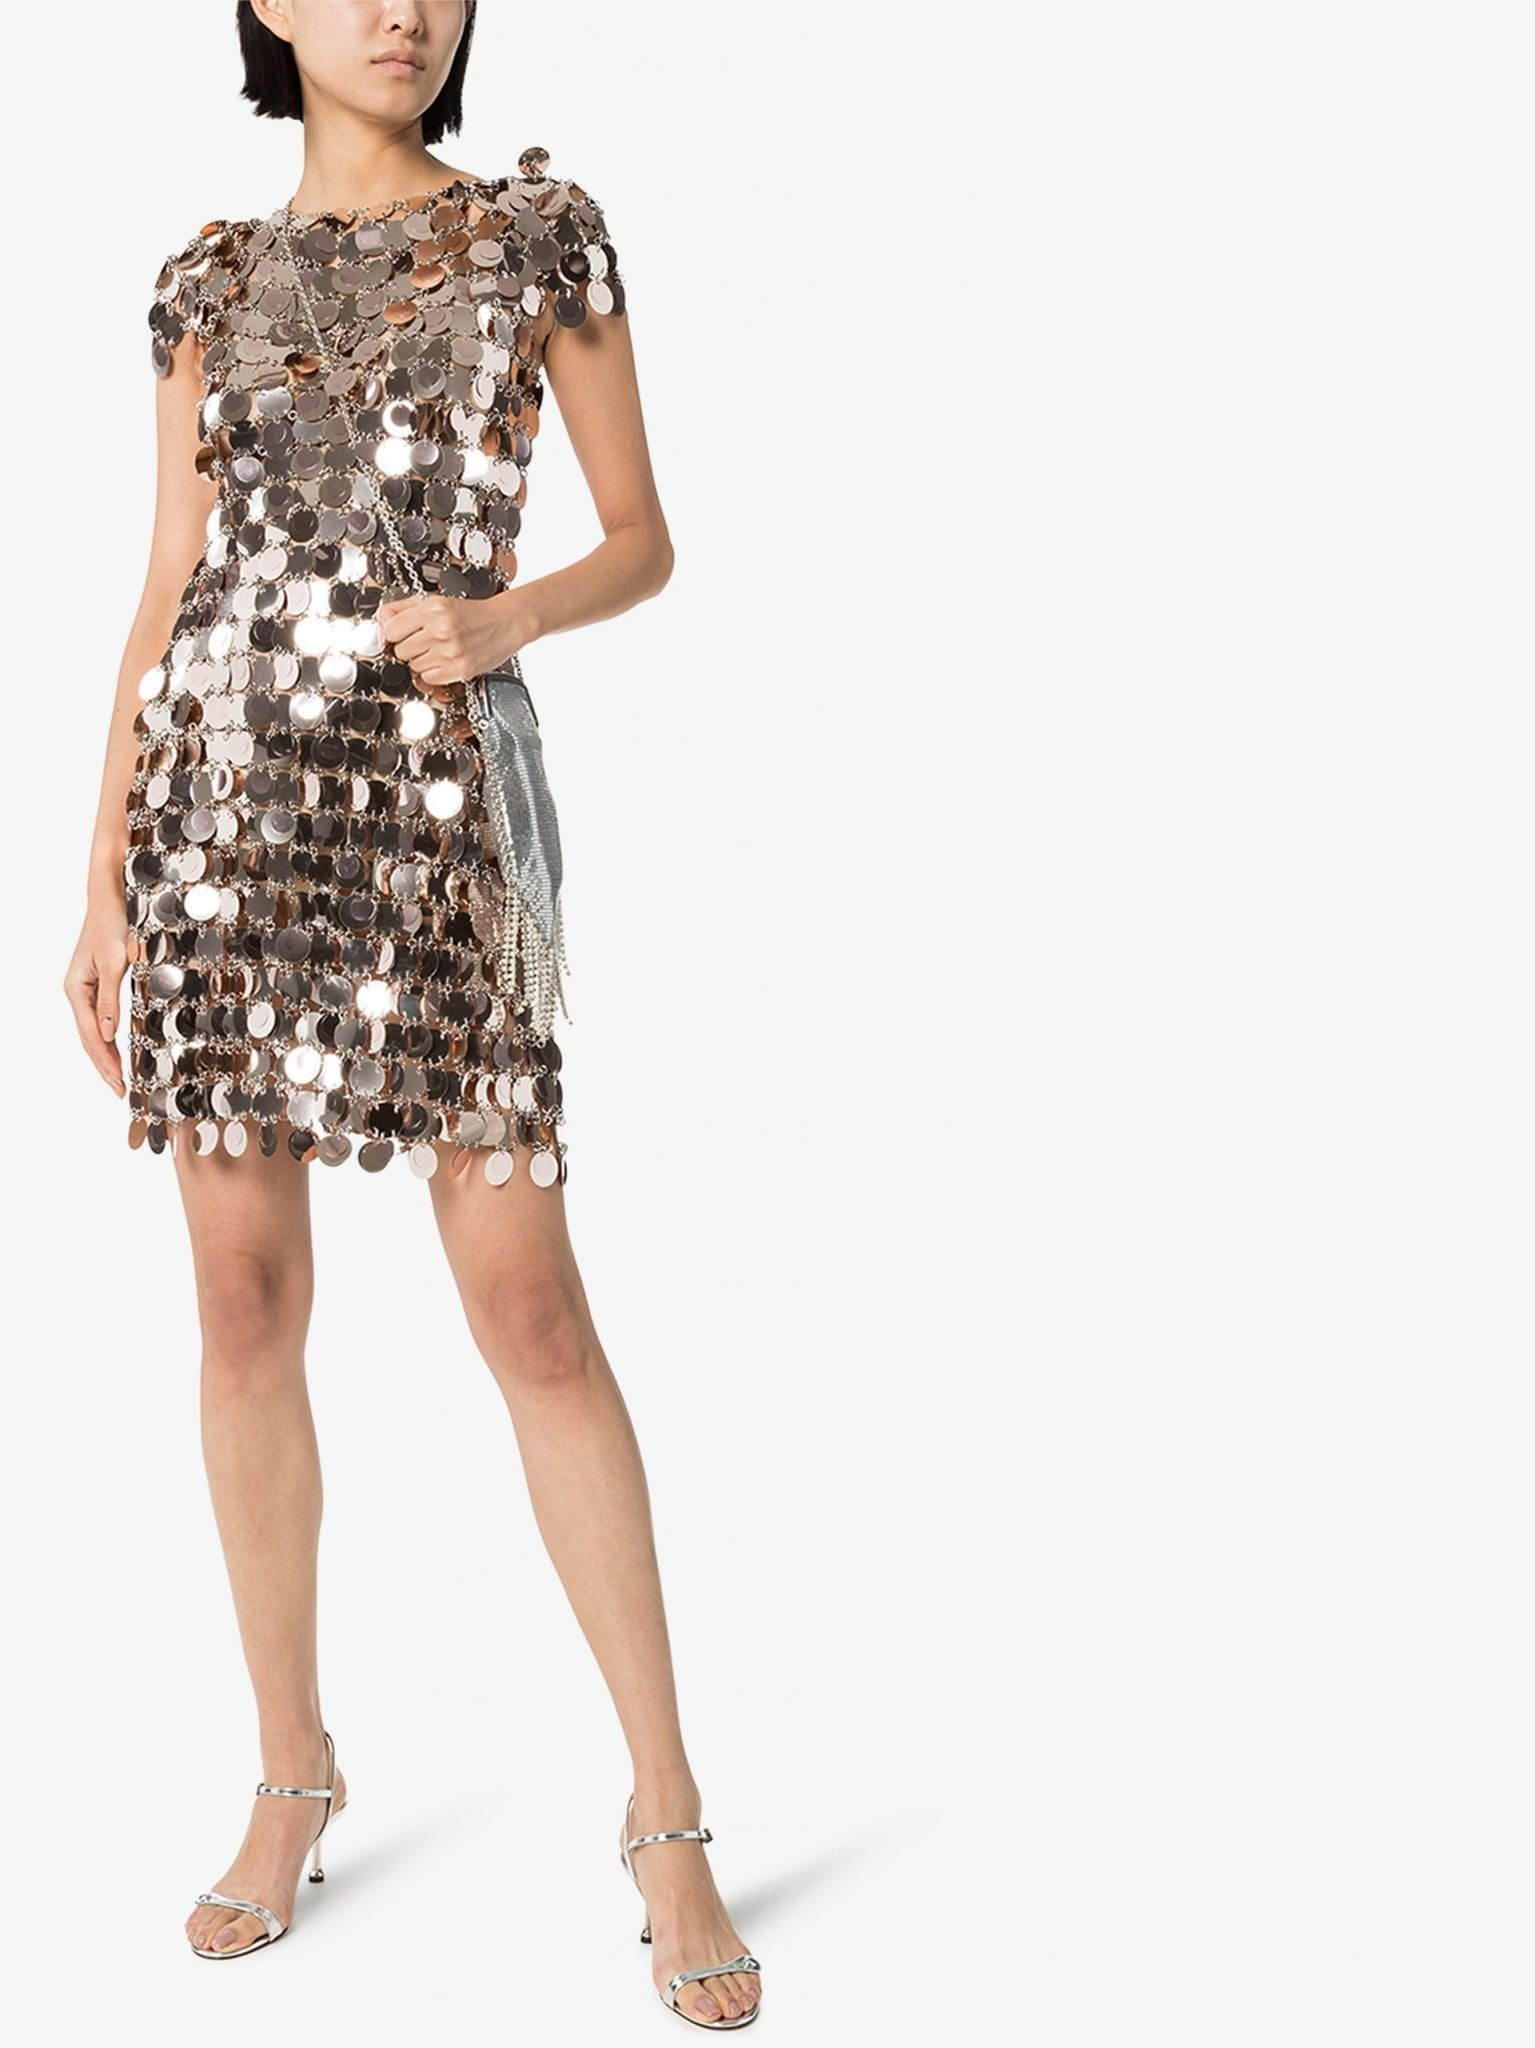 PACO RABANNE Sequin Embellished Mini Dress